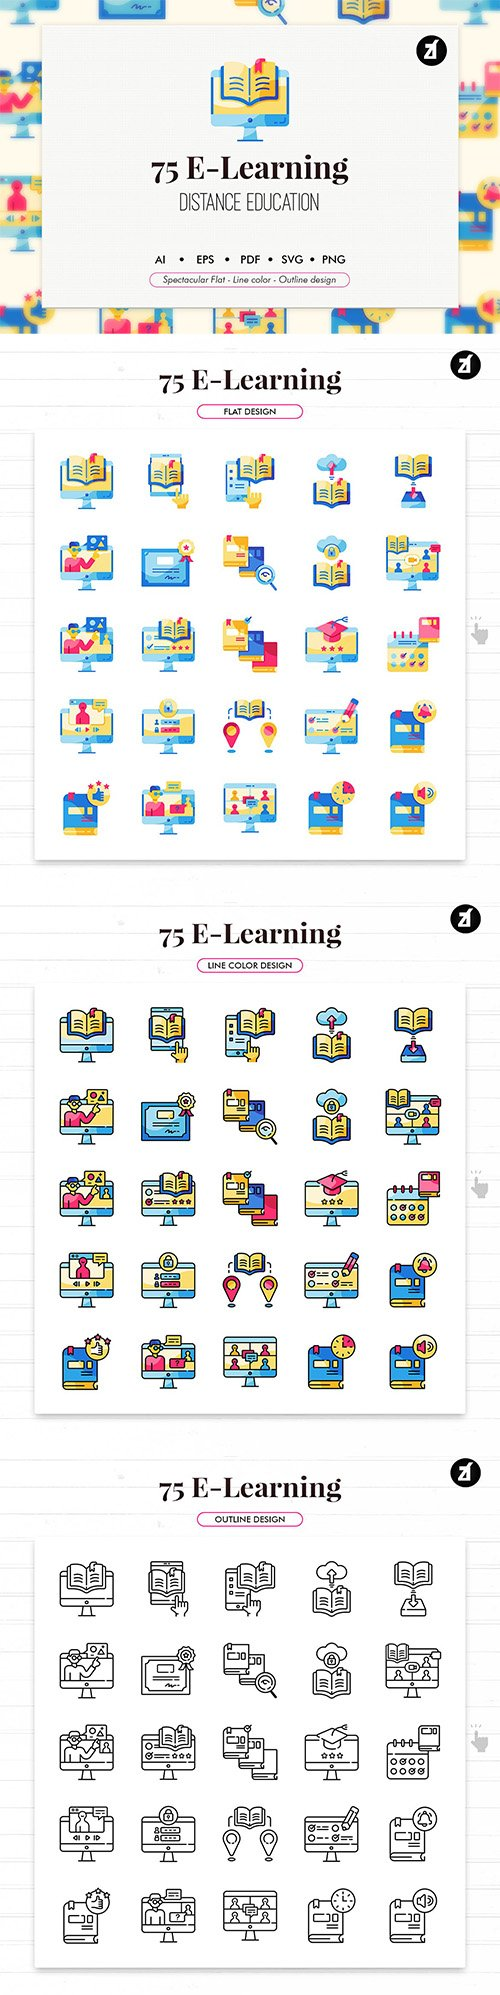 75 E-Learning elements icon pack